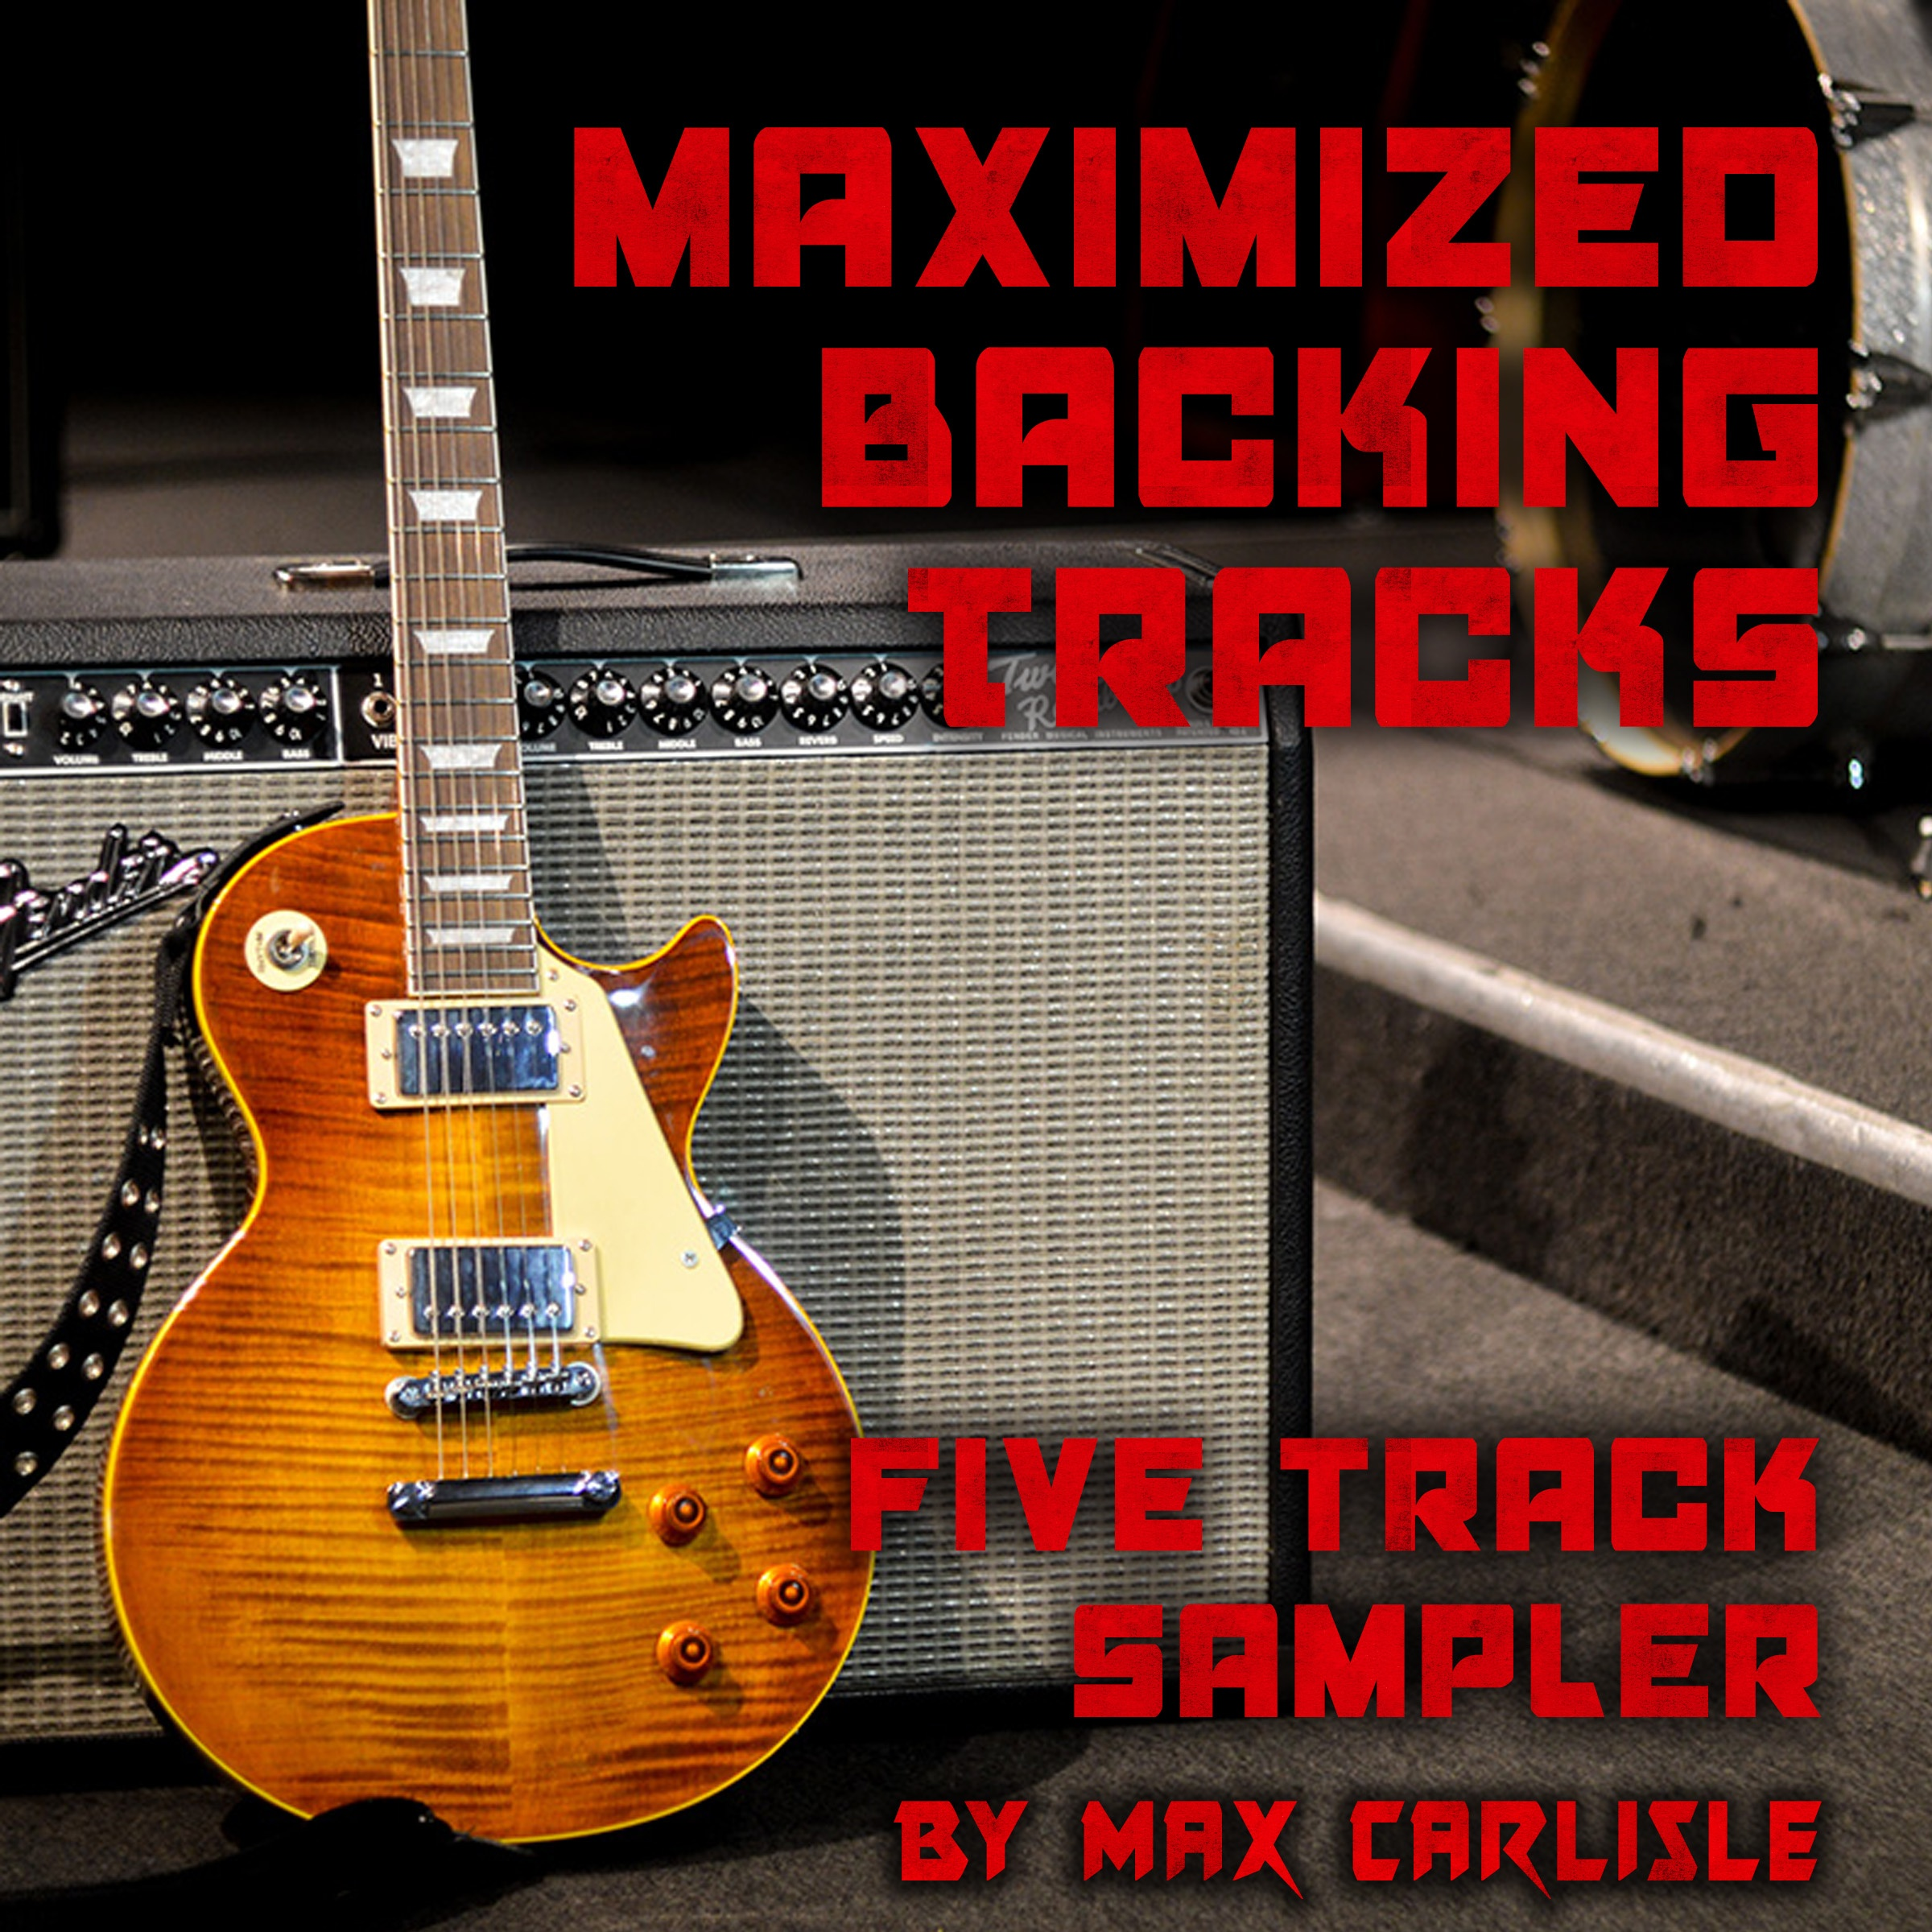 Maximized Backing Tracks Free 5 Track Sampler!